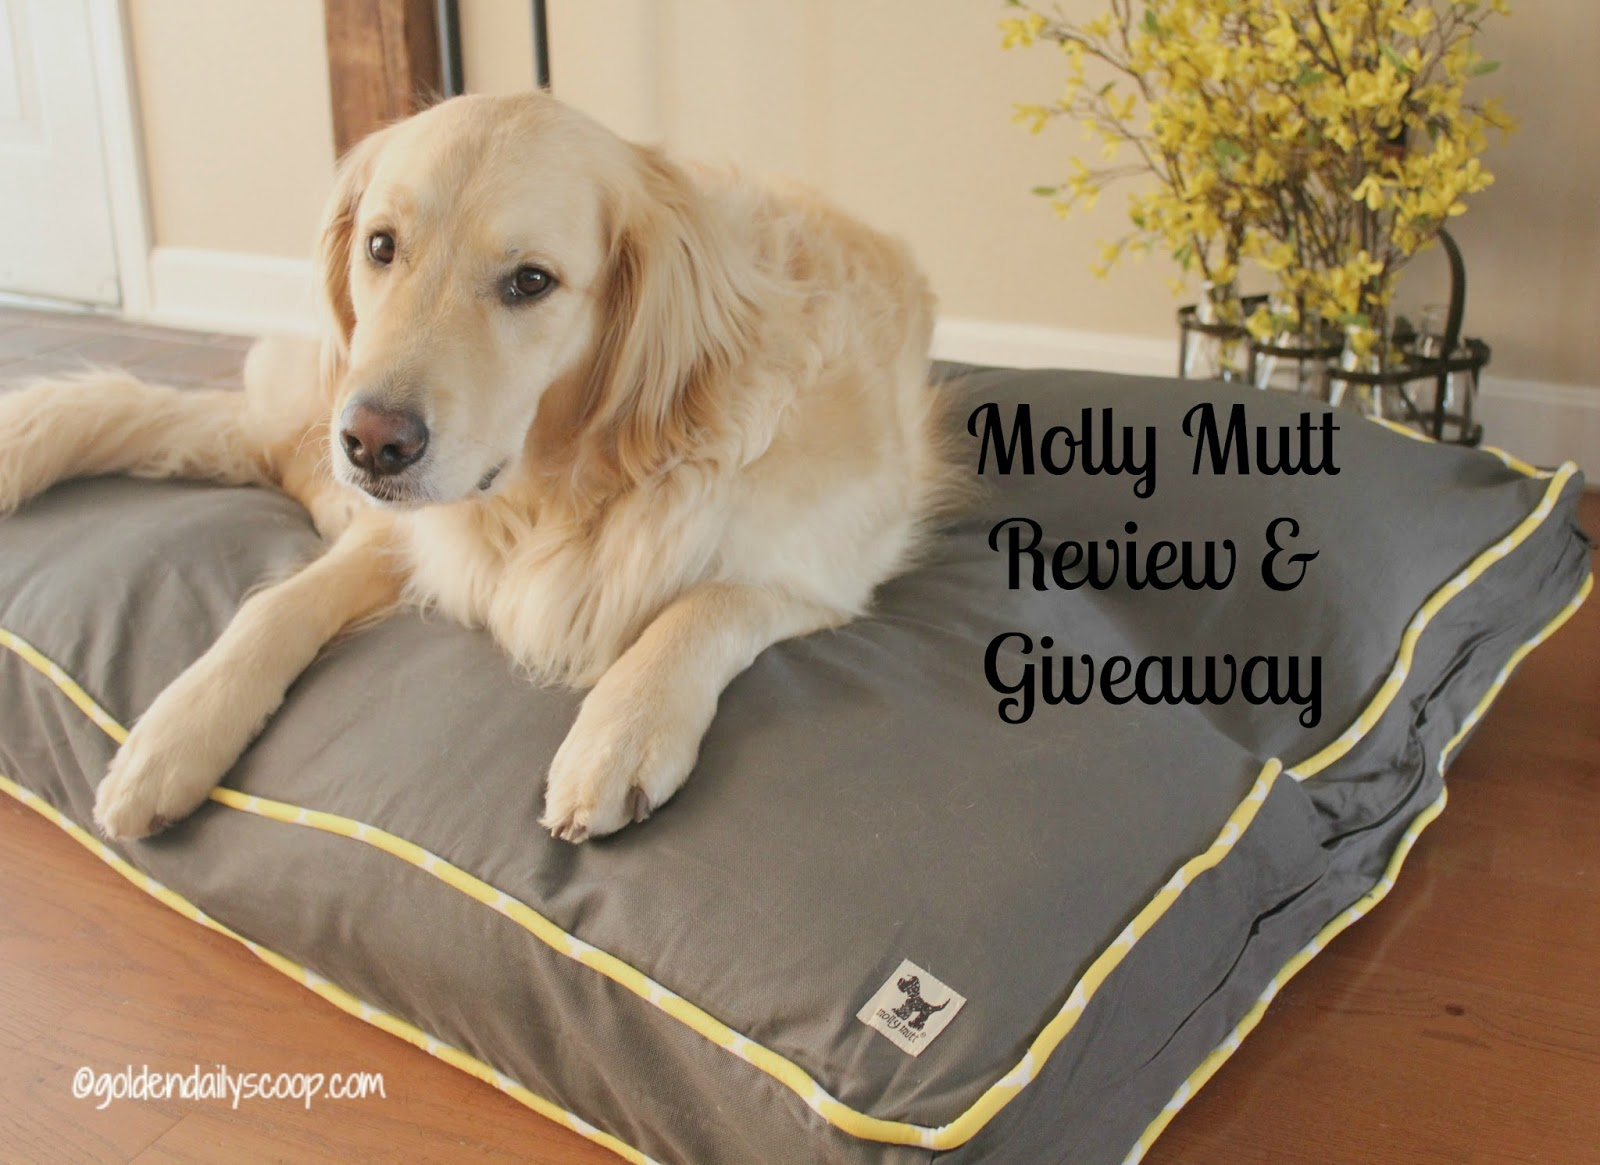 Upcycle Your Stuff With Molly Mutt Dog Beds